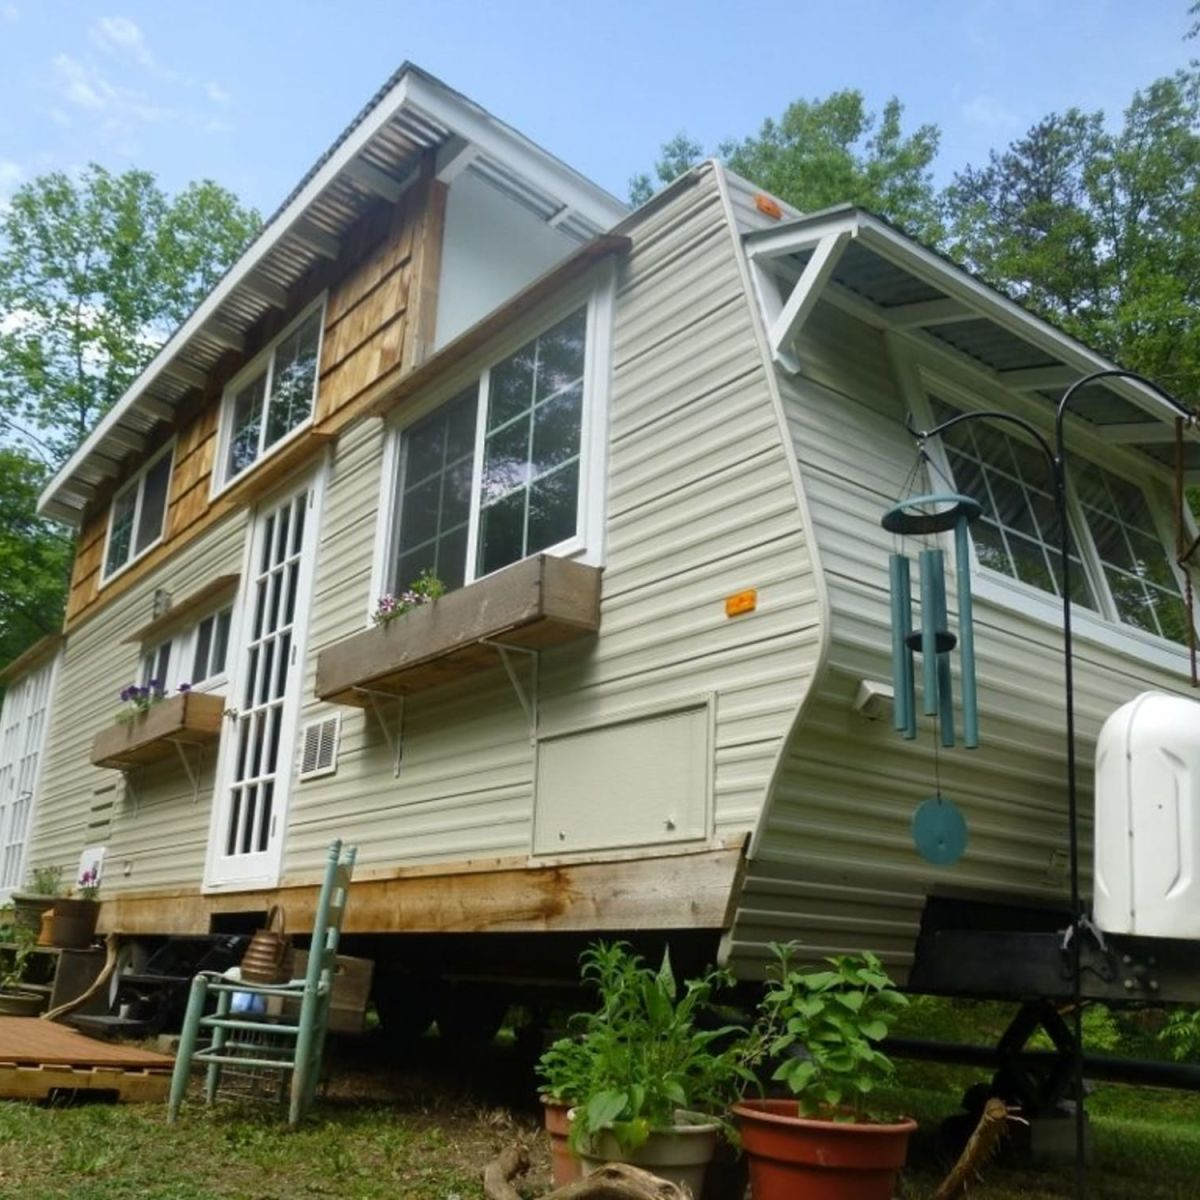 Kirkwood Tiny Homes Tiny House For Sale In